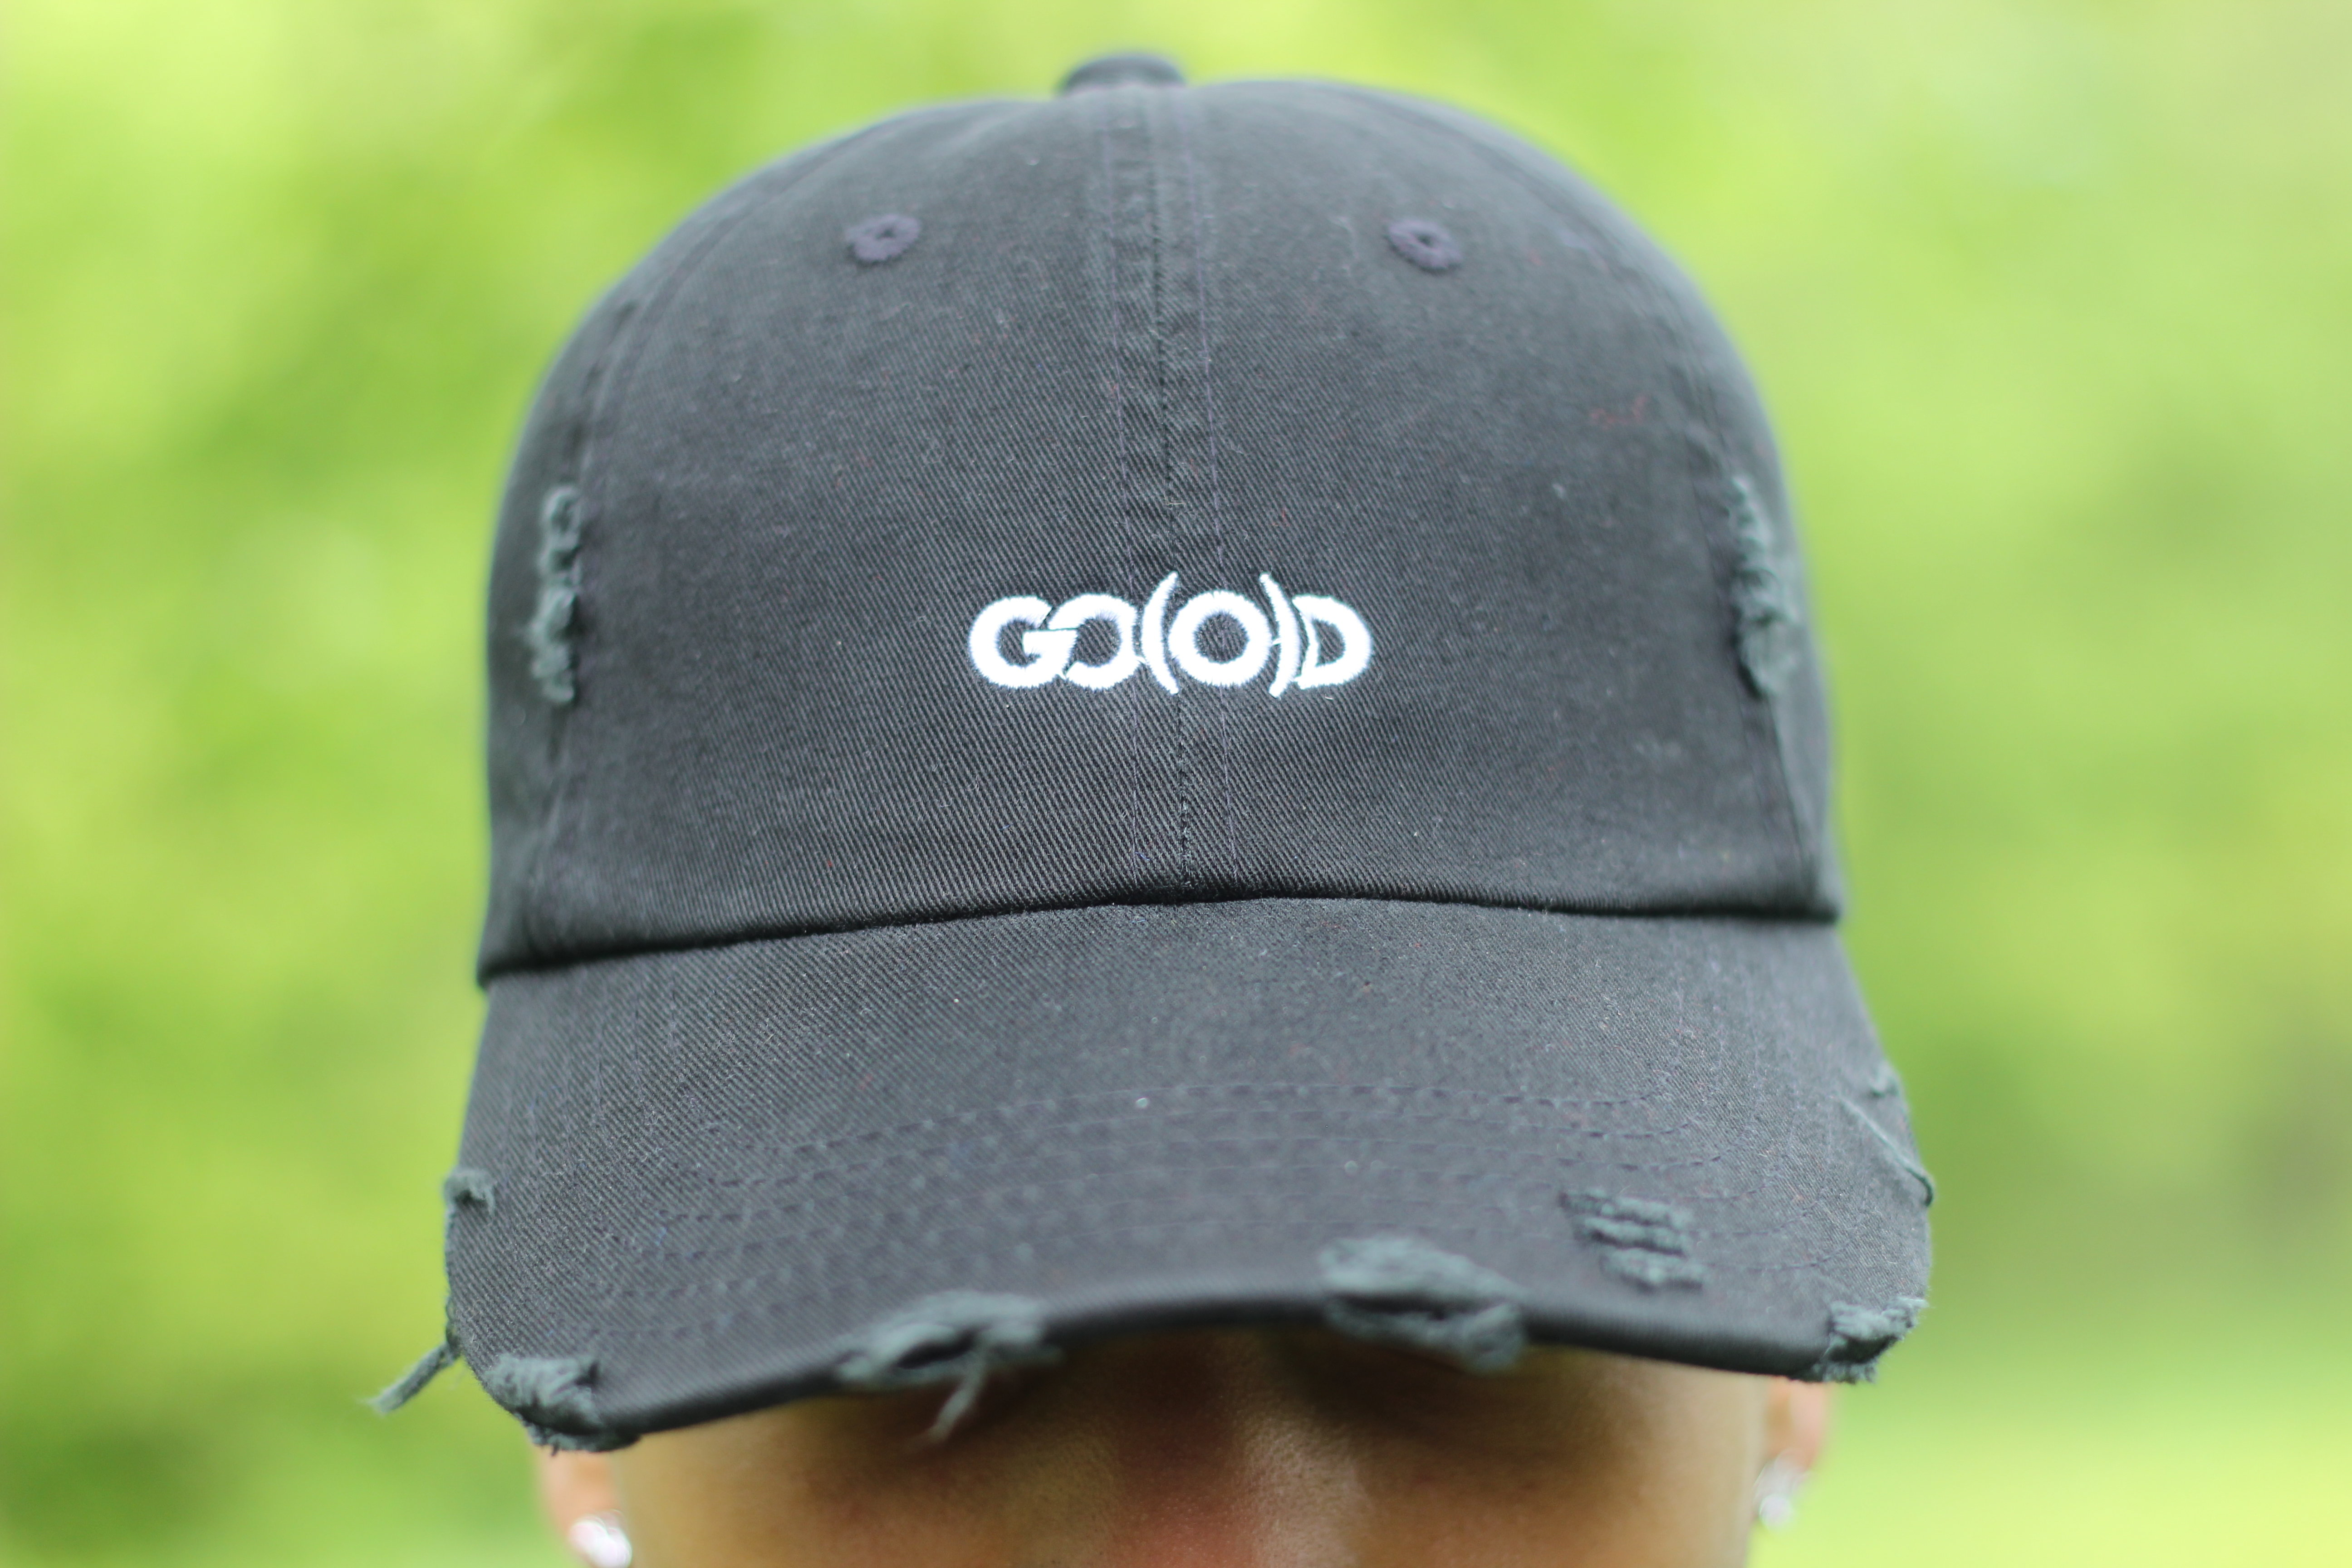 *SOLD OUT* GO(O)D Distressed Dad Hat-black/white